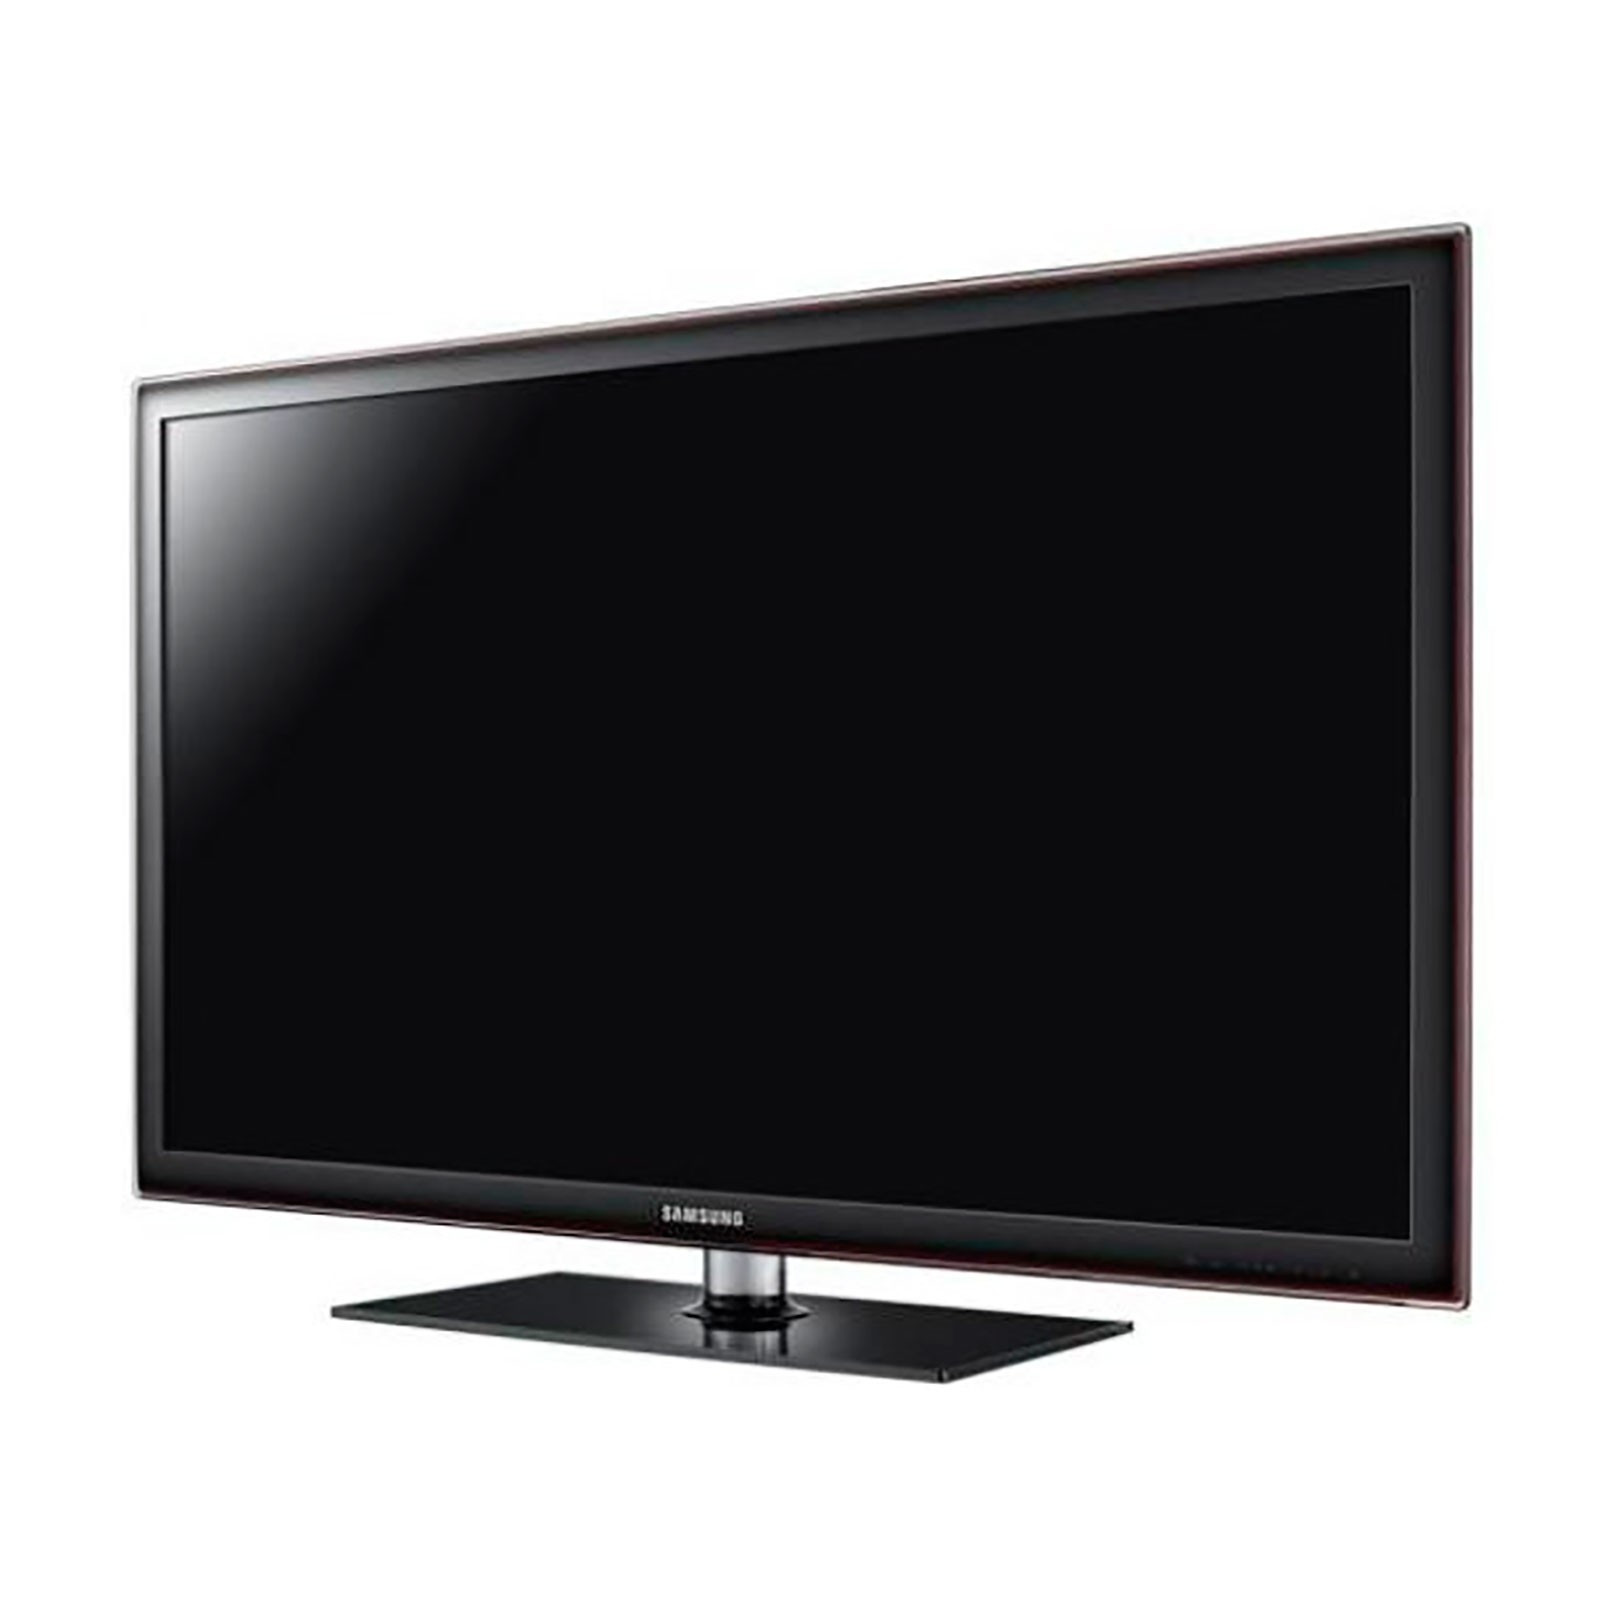 Televisor Smart Tv 32 Encantador Televisor Tv Led 32 Samsung Ue32d5500 Smart Tv Full Hd Of 50  Magnífica Televisor Smart Tv 32